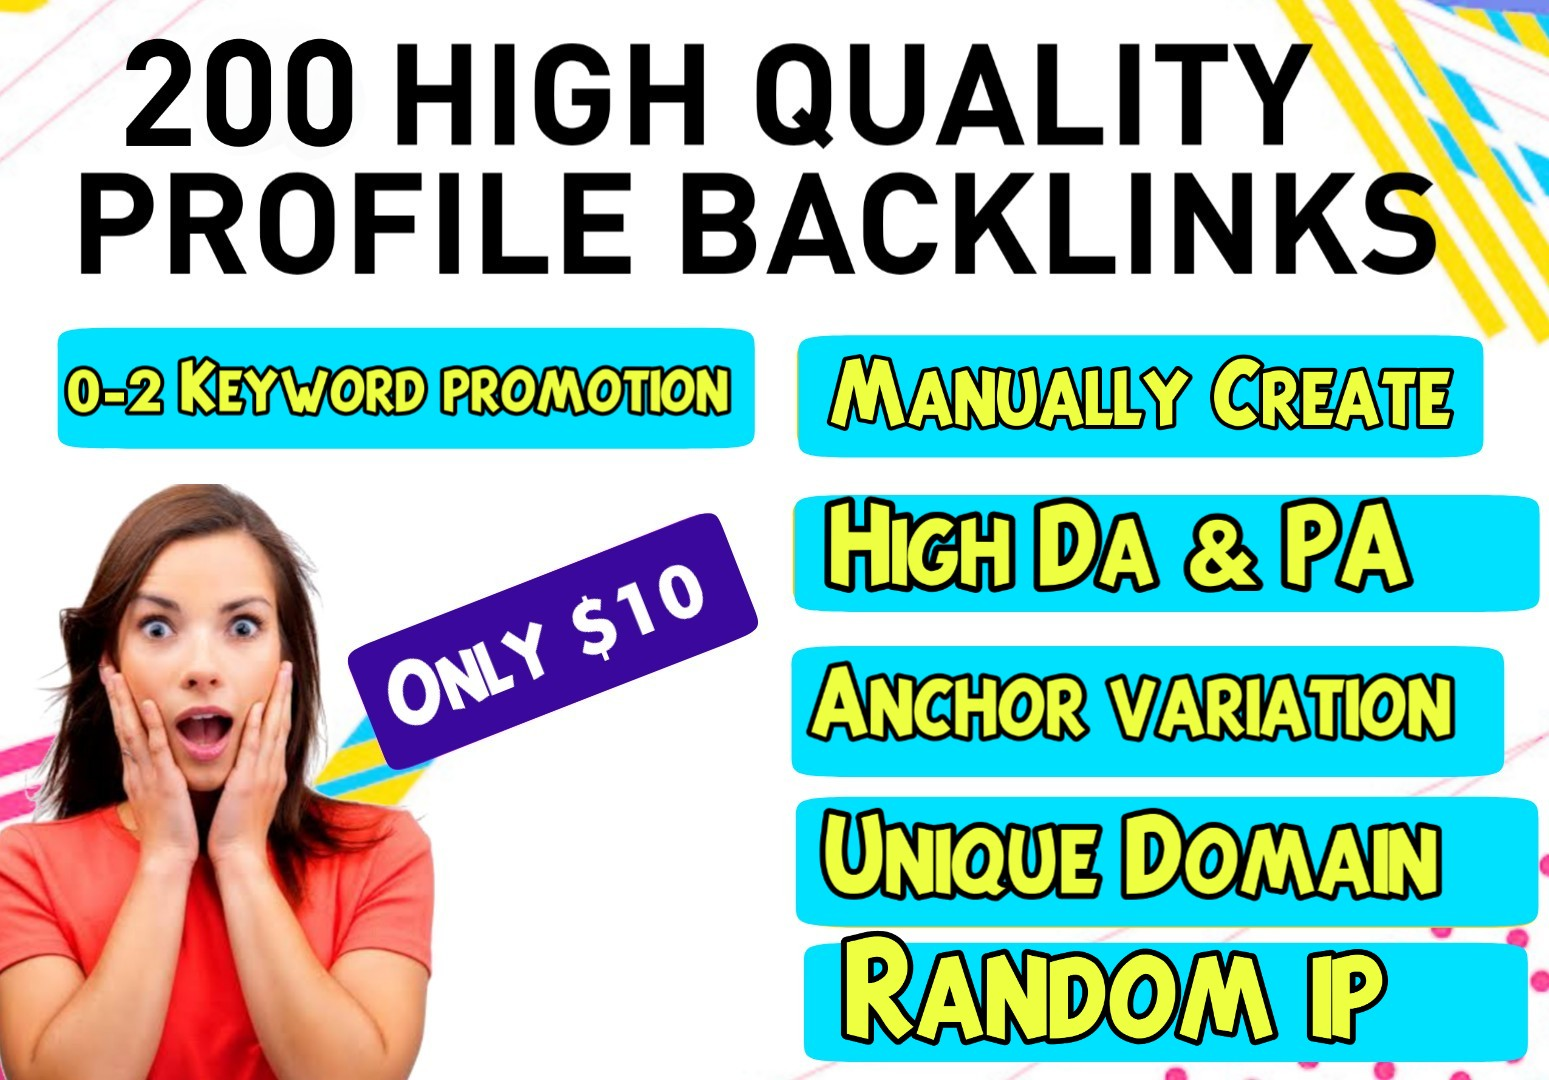 Manually 200 Do-follow Profile backlinks with High DA & PA for website SEO